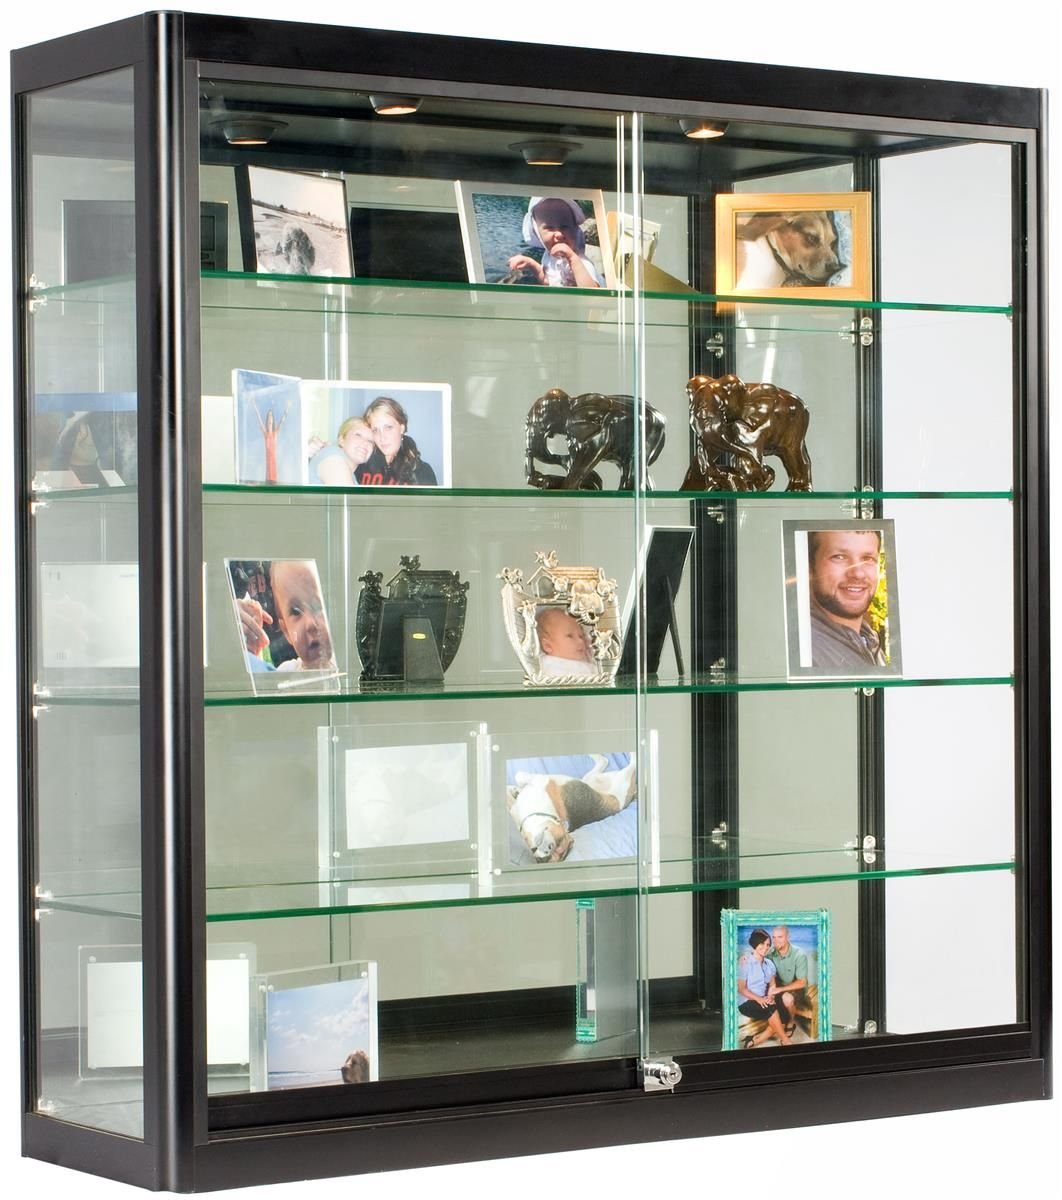 3x3 Wall Mounted Display Case W Mirror Back 2 Top Halogen Lights Locking Black Wall Mounted Display Case Glass Display Case Glass Cabinets Display